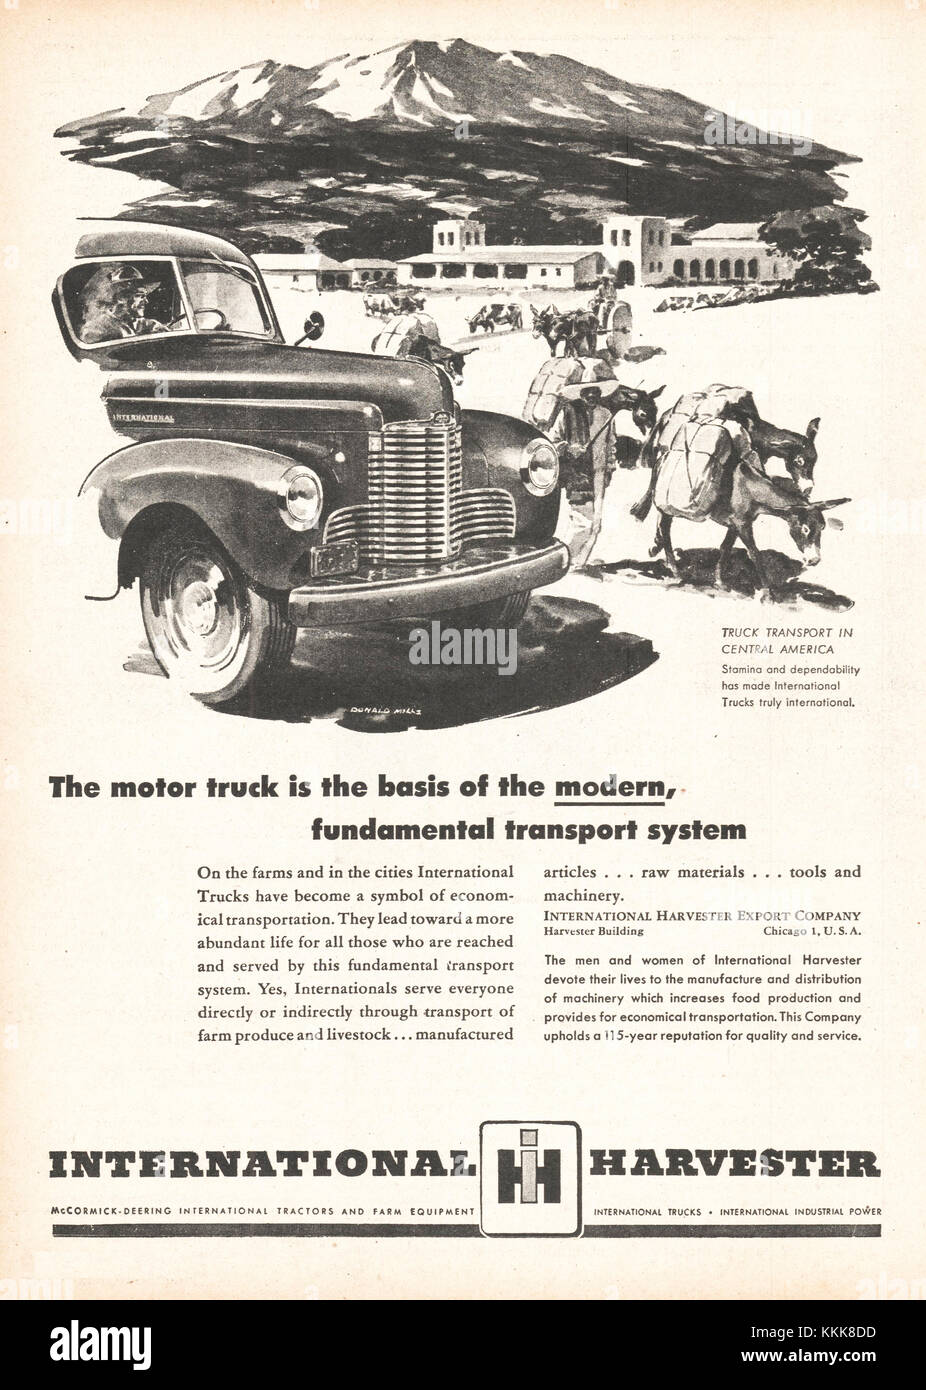 Harvester Company Stock Photos Images Alamy Electrical Wiring Diagram For 1941 1948 Studebaker All Trucks Us Magazine International Advert Image